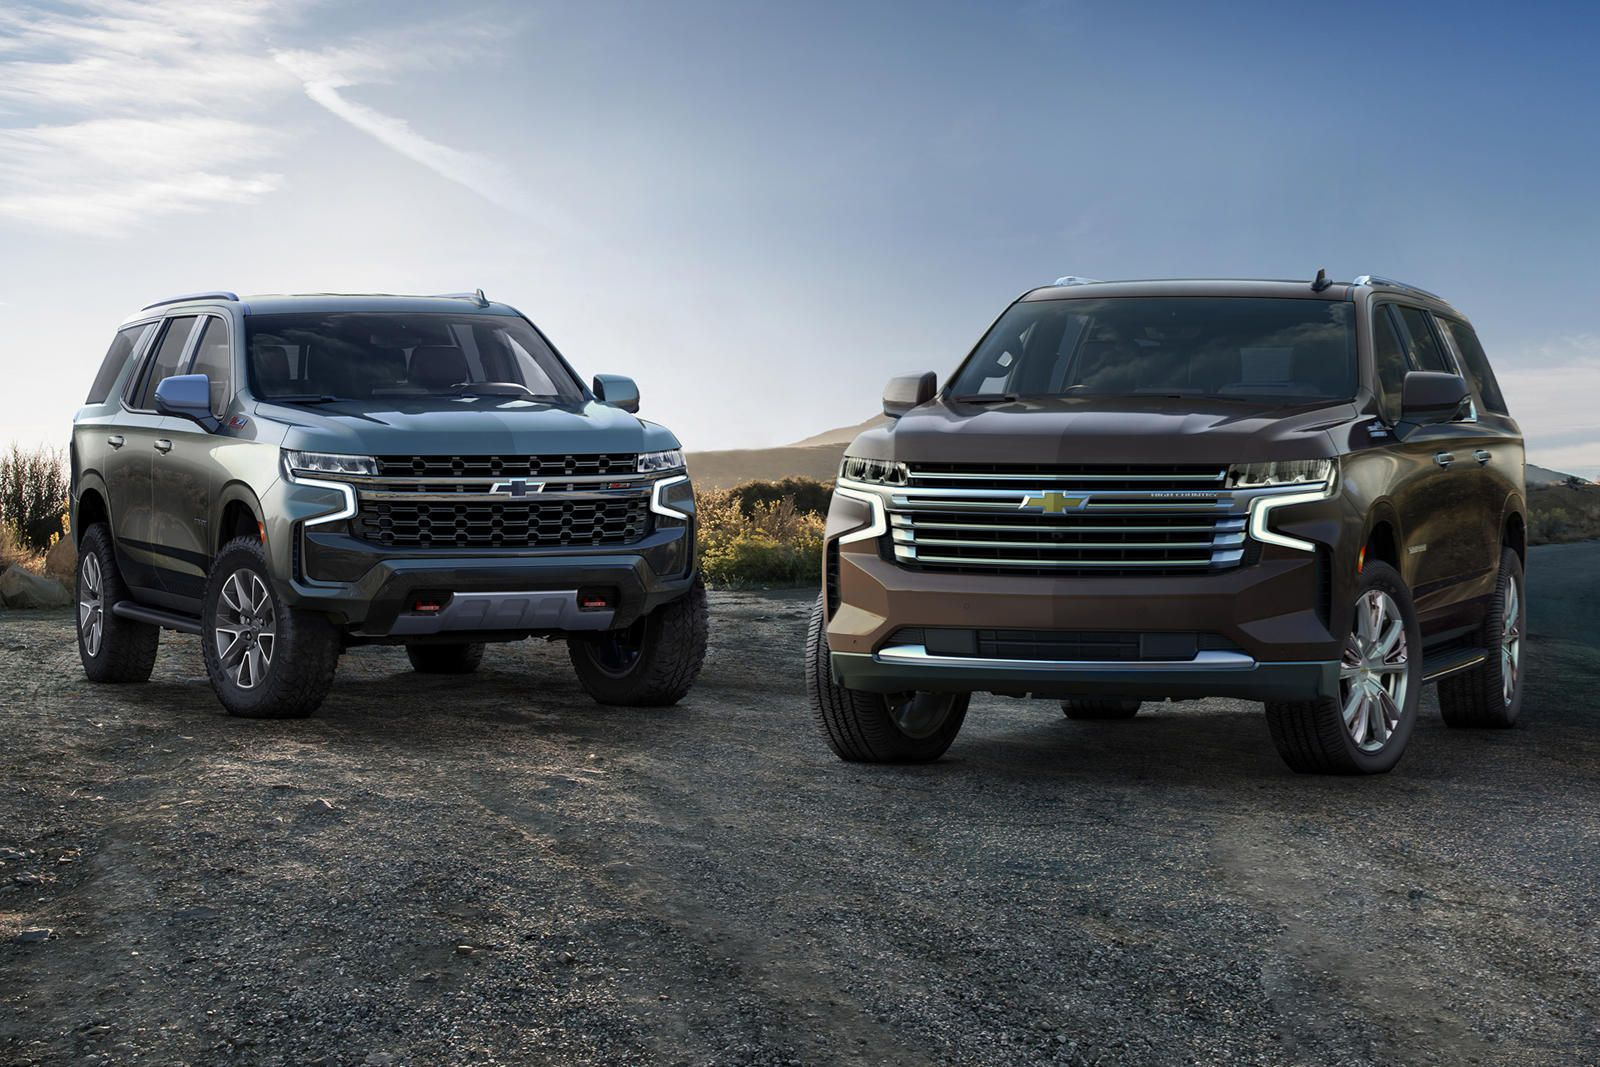 2020 Chevy Suburban Price We Hope That The Initial Price Of The Next Suburban Will Grow From The Price Chevrolet Suburban Family Cars Suv Chevy Suburban